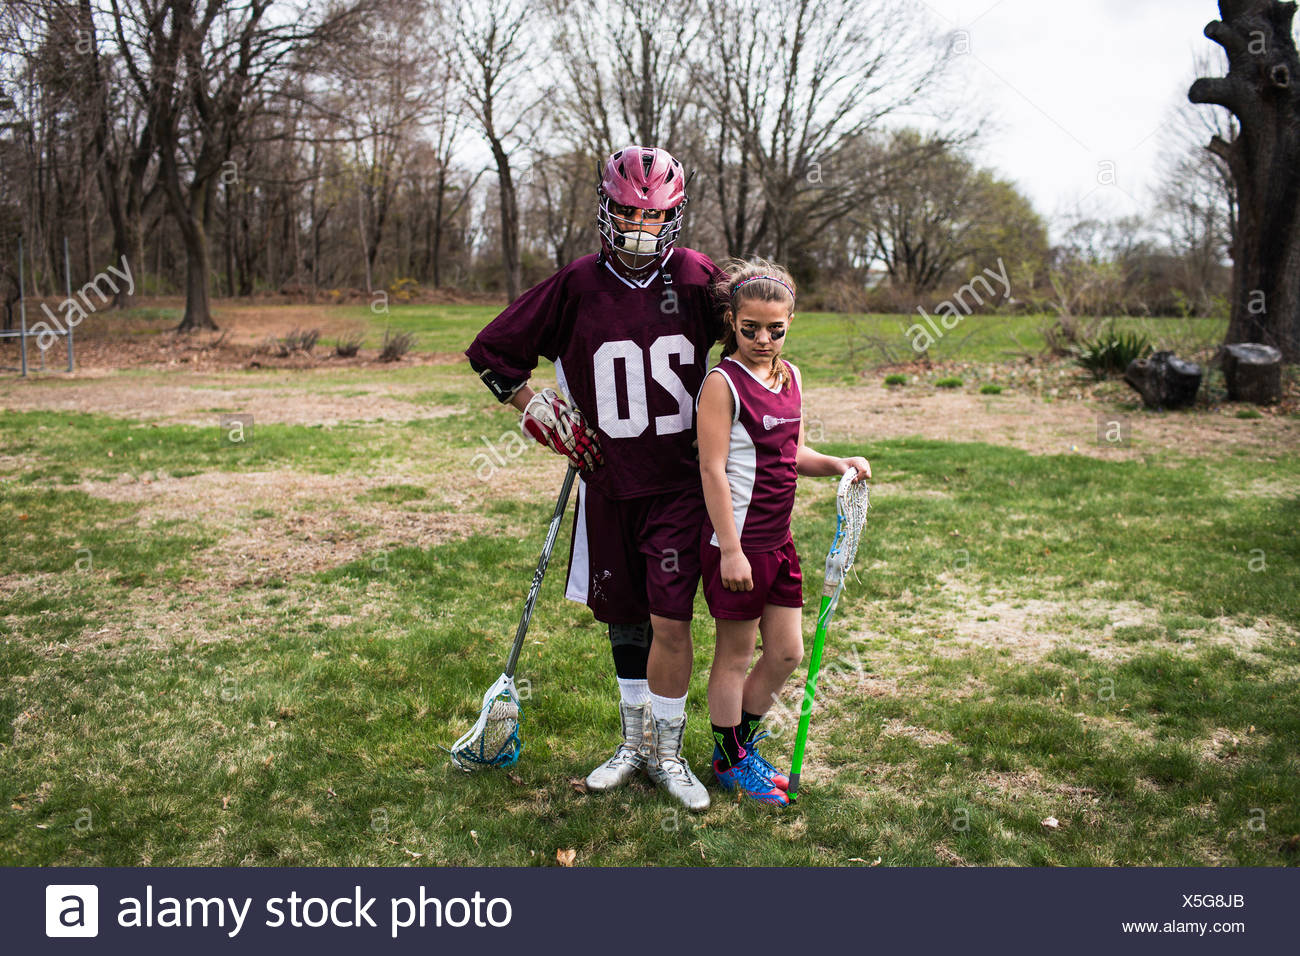 Brother and sister wearing lacrosse uniforms - Stock Image